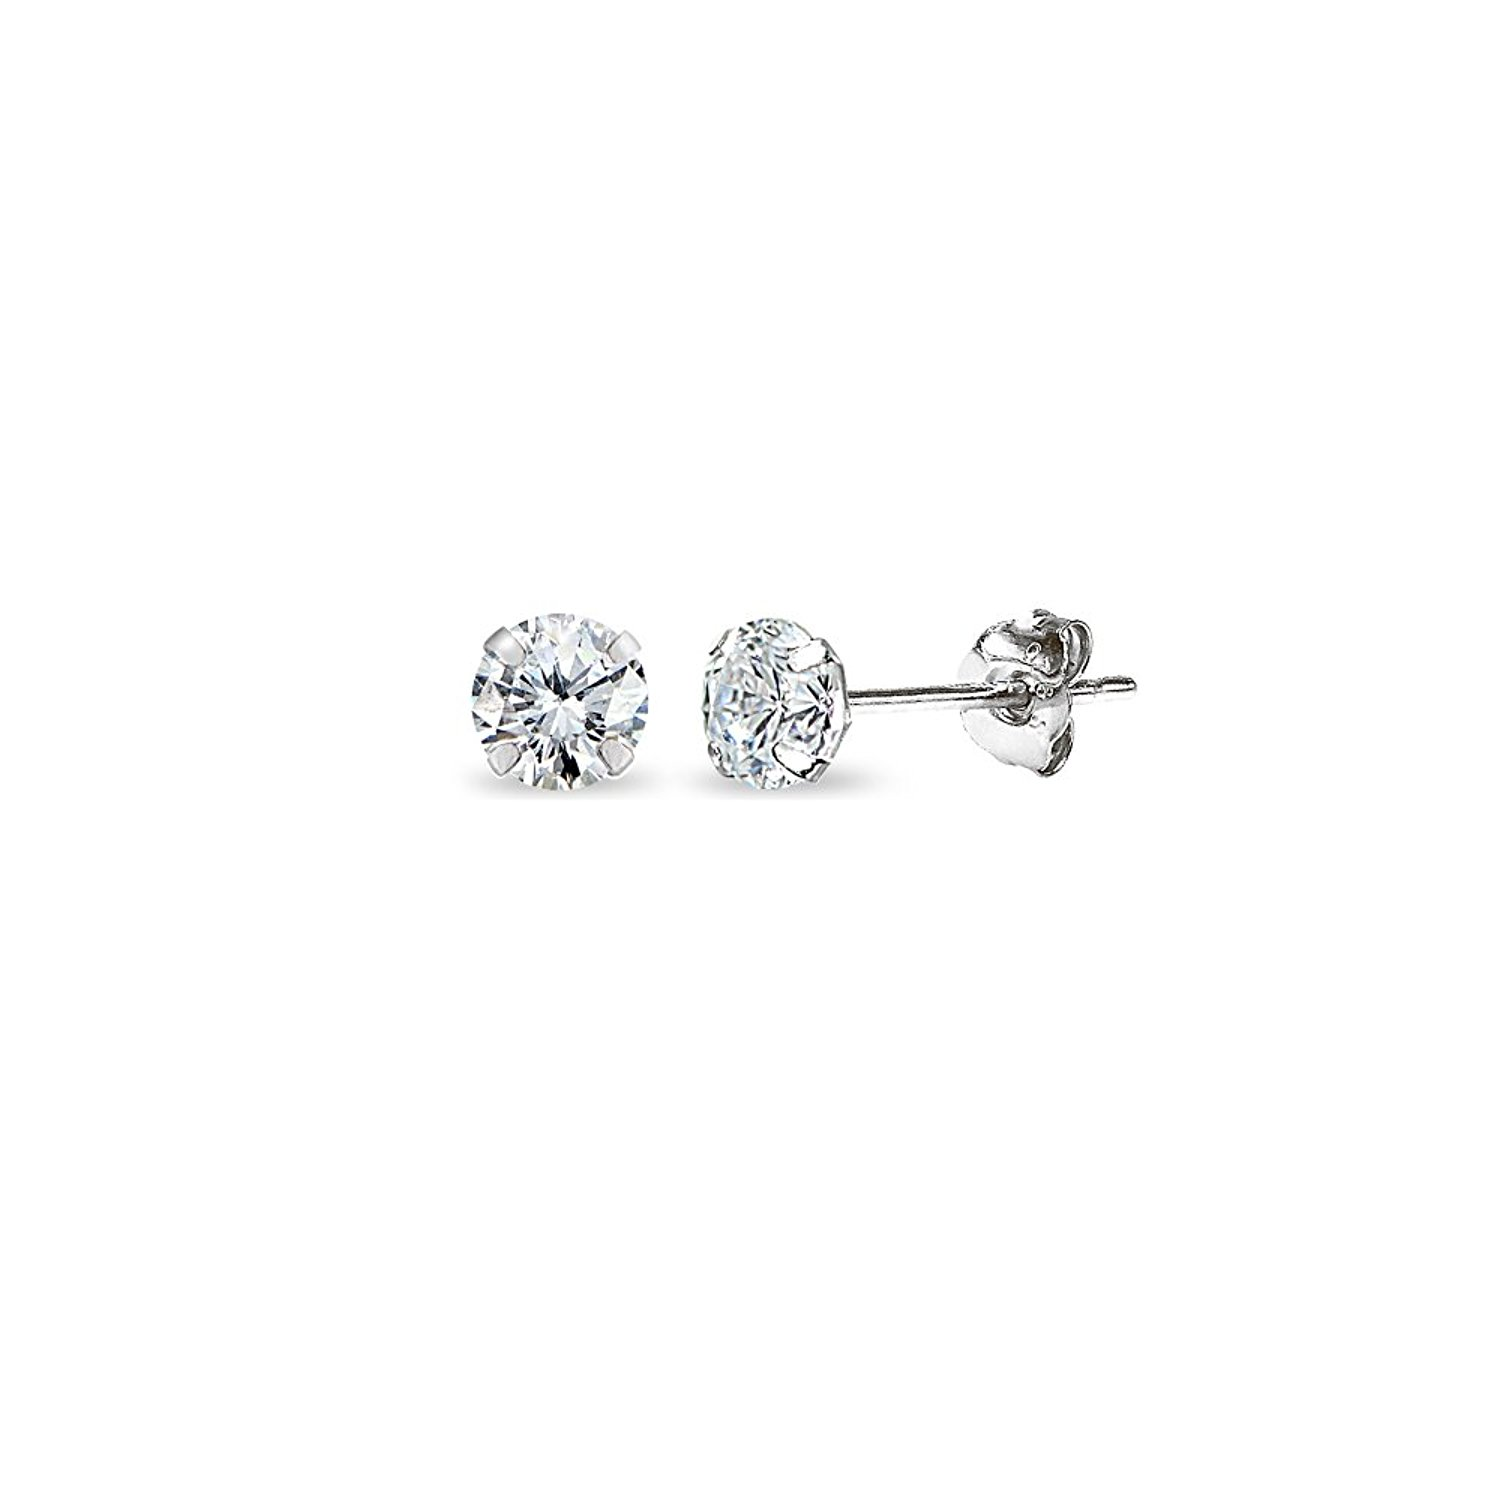 14k Gold Cubic Zirconia Tiny 3mm Round Uni Stud Earrings For Men Women Boys